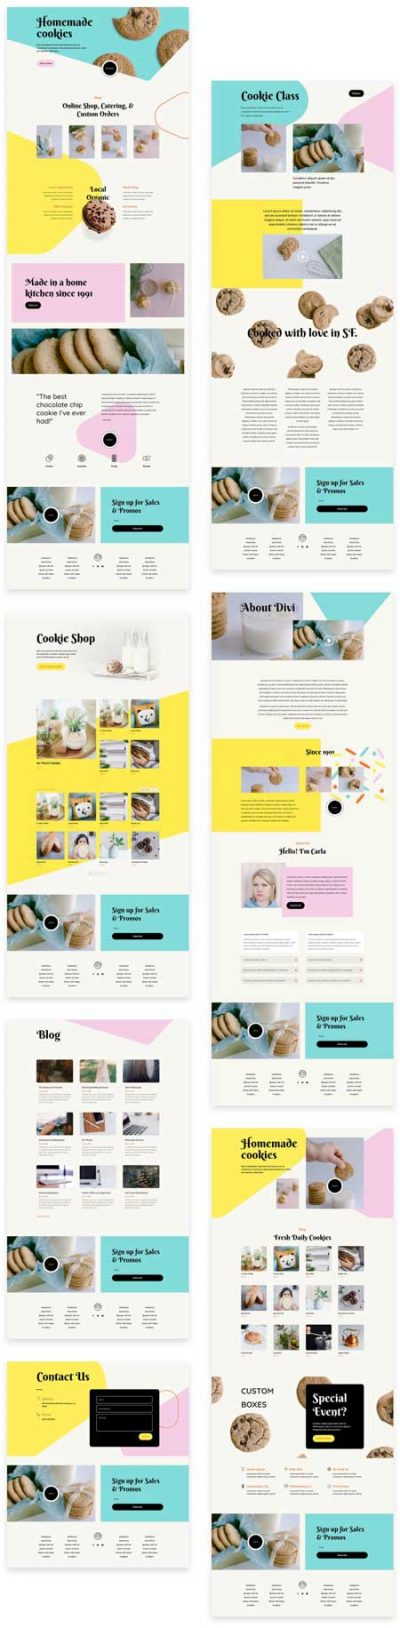 Divi Homemade Cookies Layout Pack